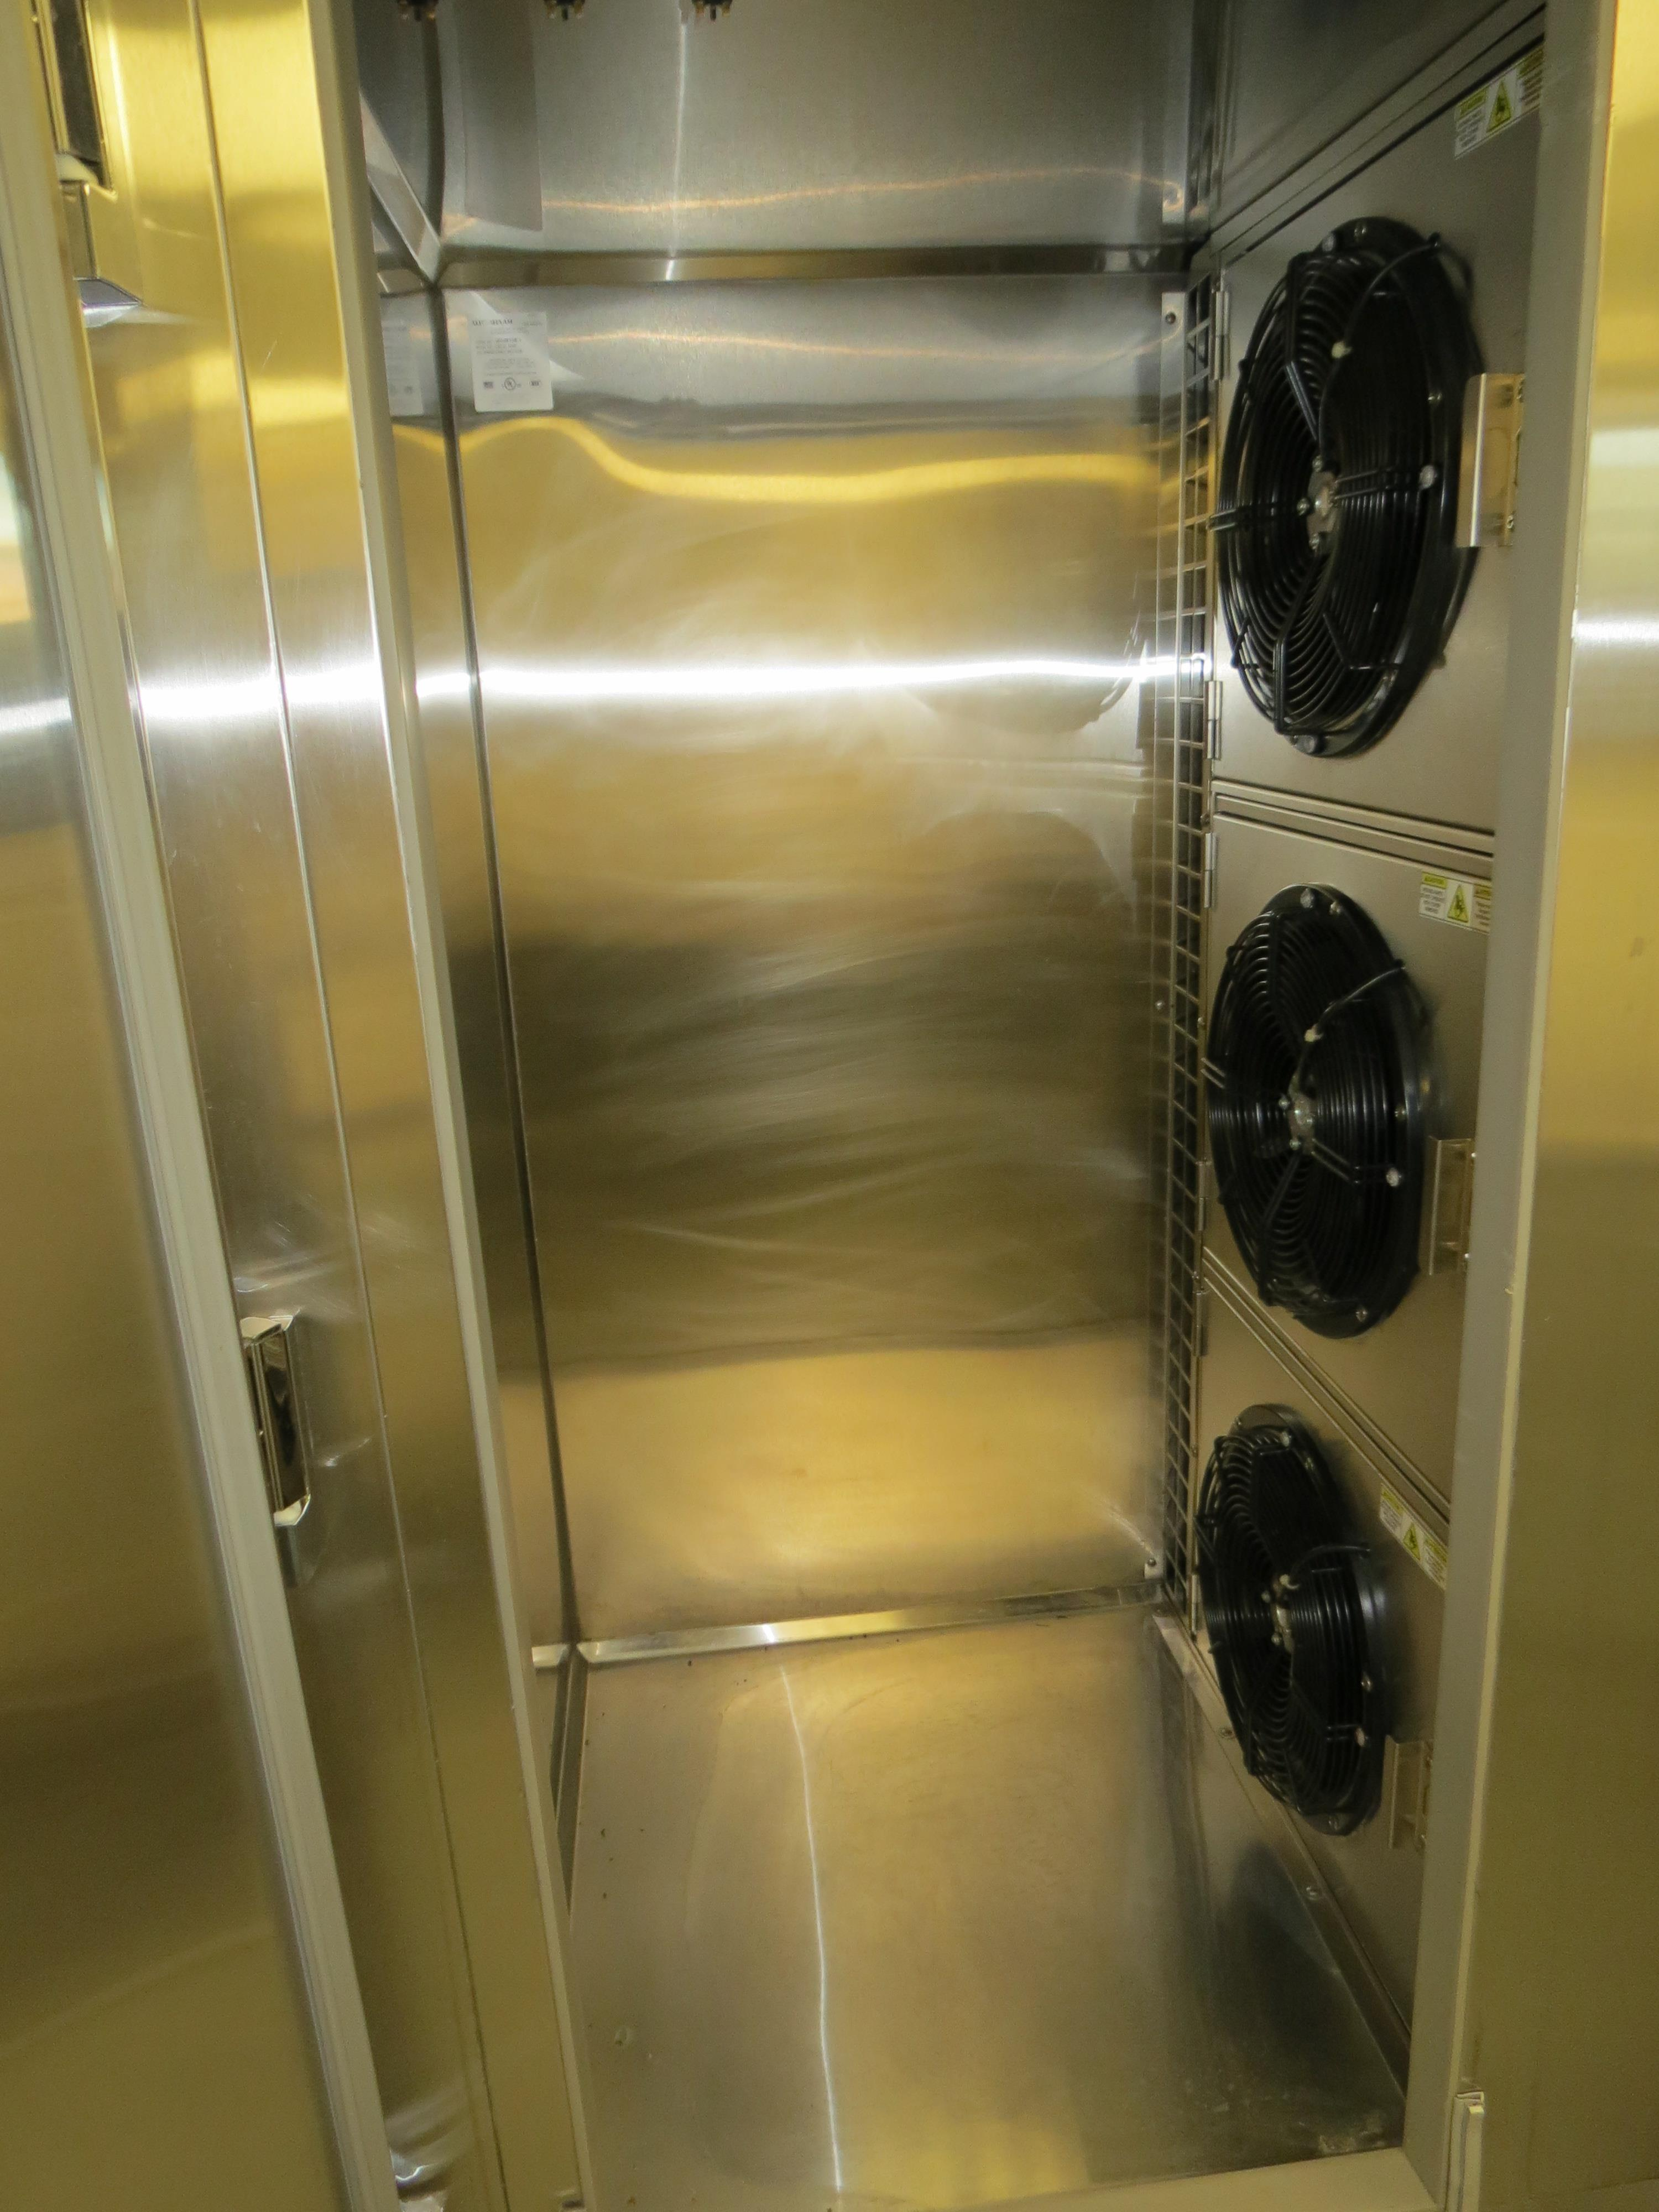 Lot 8 - ALTO SHAAM MDL. QC2-100 RAPID CHILL COMMERCIAL BLAST CHILLER, SN: W948168-1